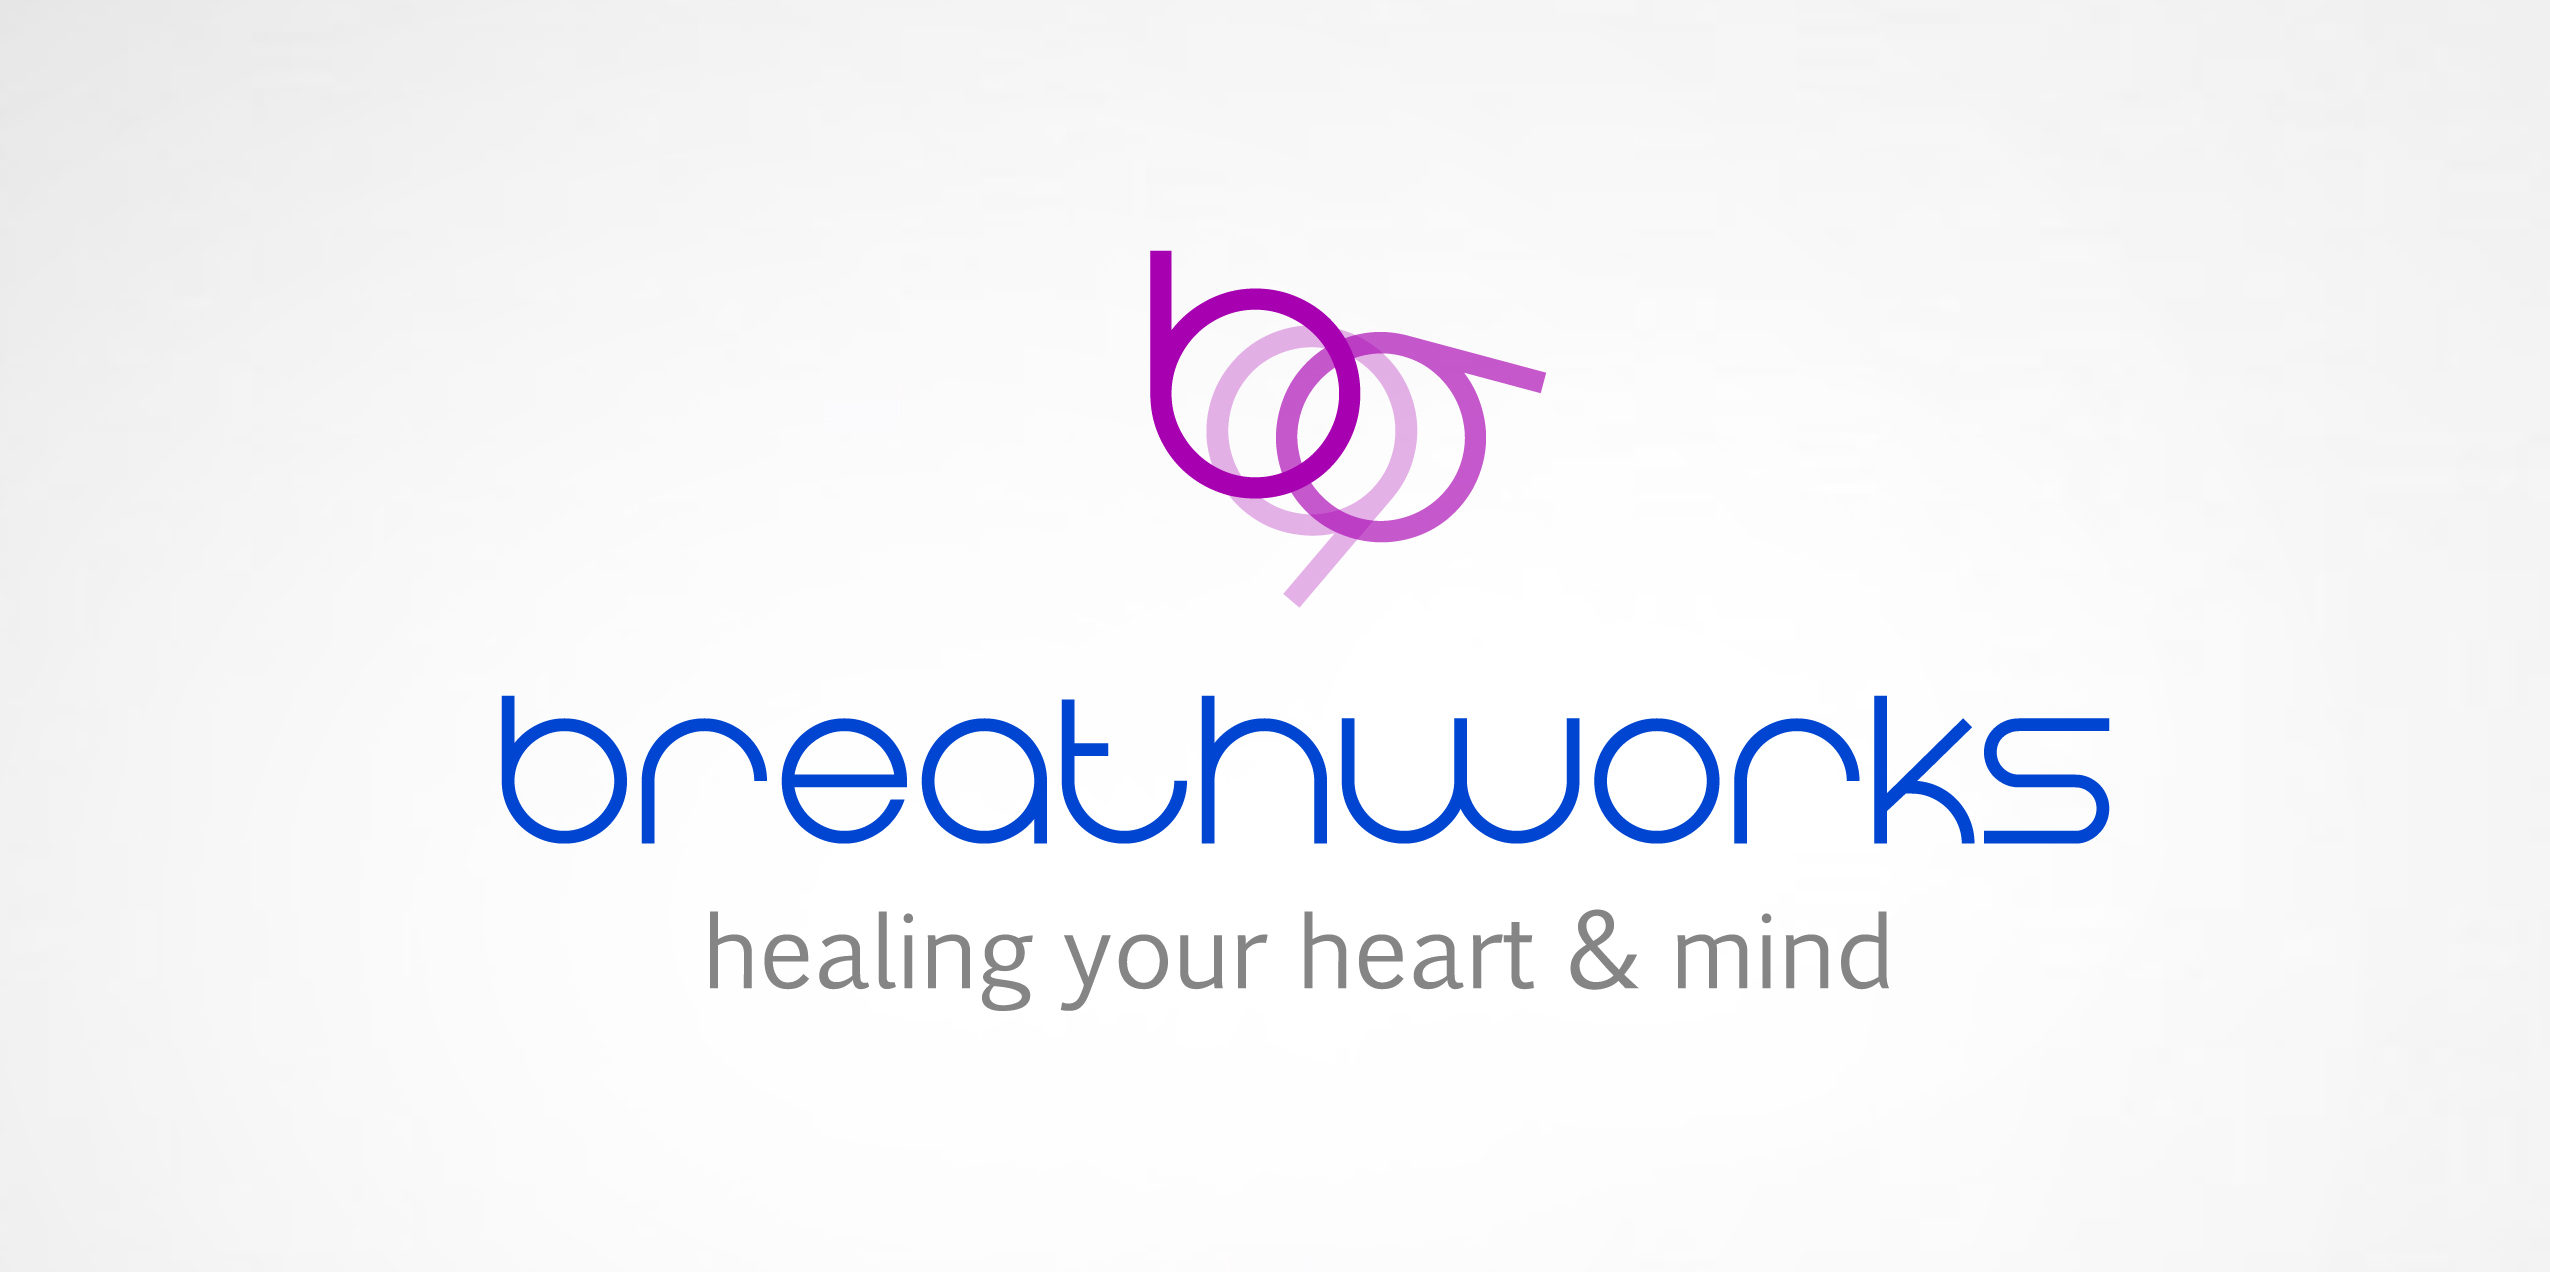 Logo Design by Lama Creative - Entry No. 27 in the Logo Design Contest New Logo Design for Breathworks.